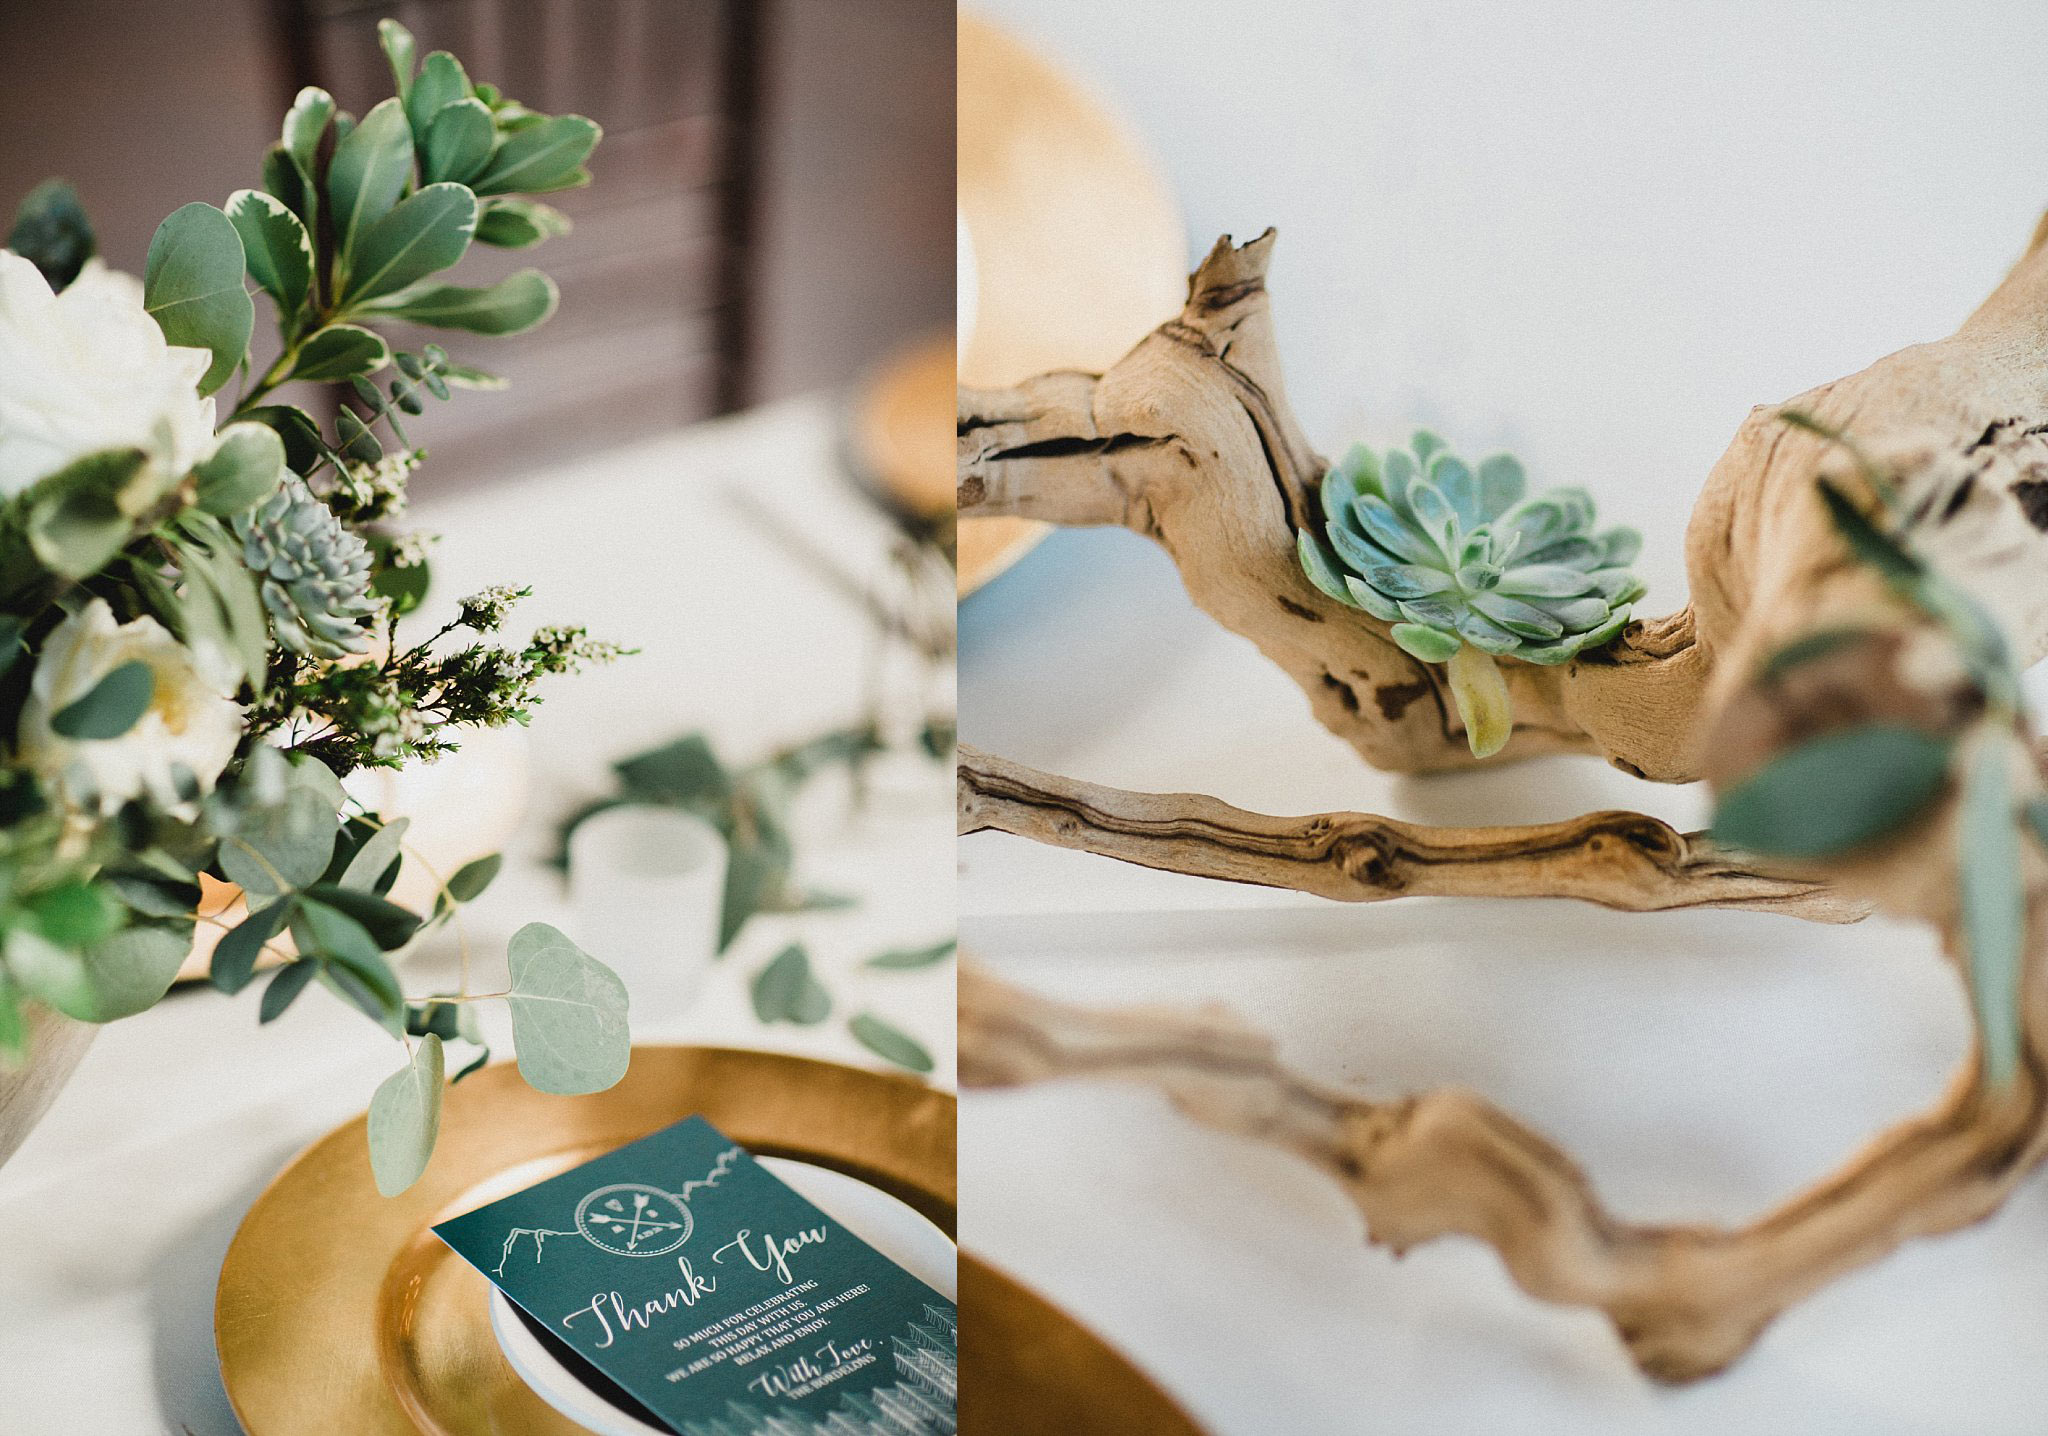 Driftwood and succulents on tables for organic wedding table decor